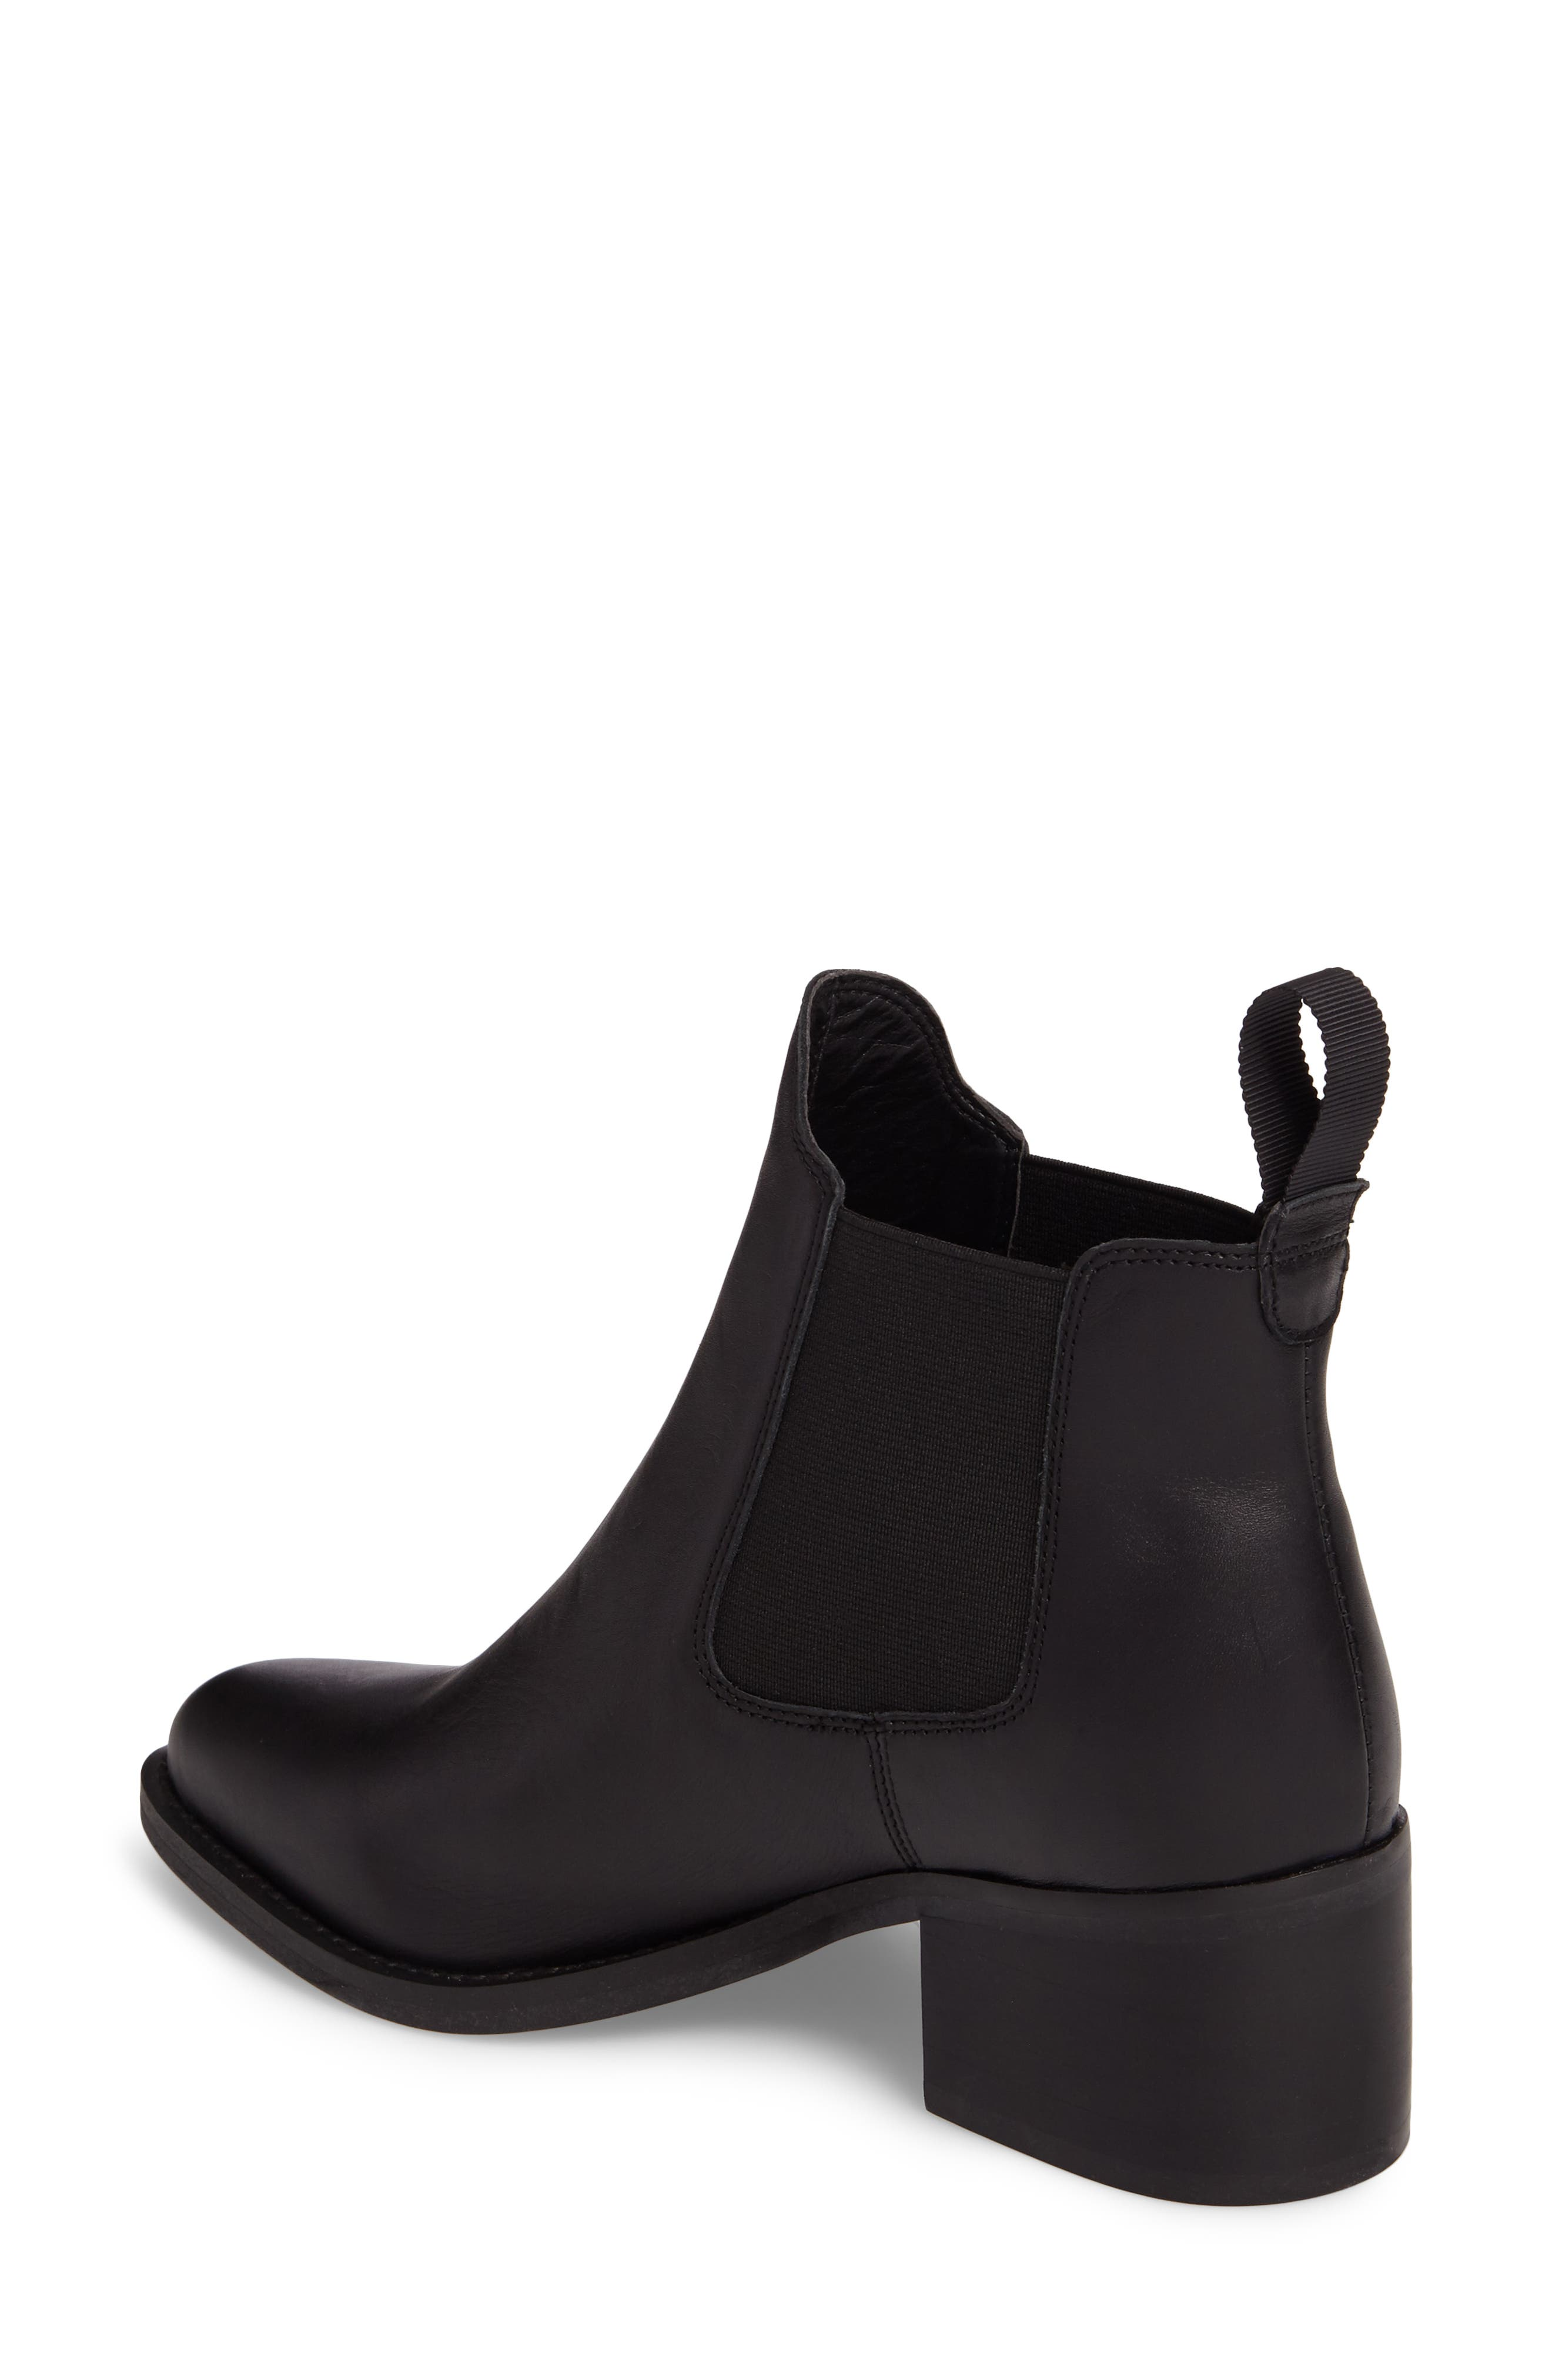 Alternate Image 2  - Tony Bianco Fraya Ankle Bootie (Women)